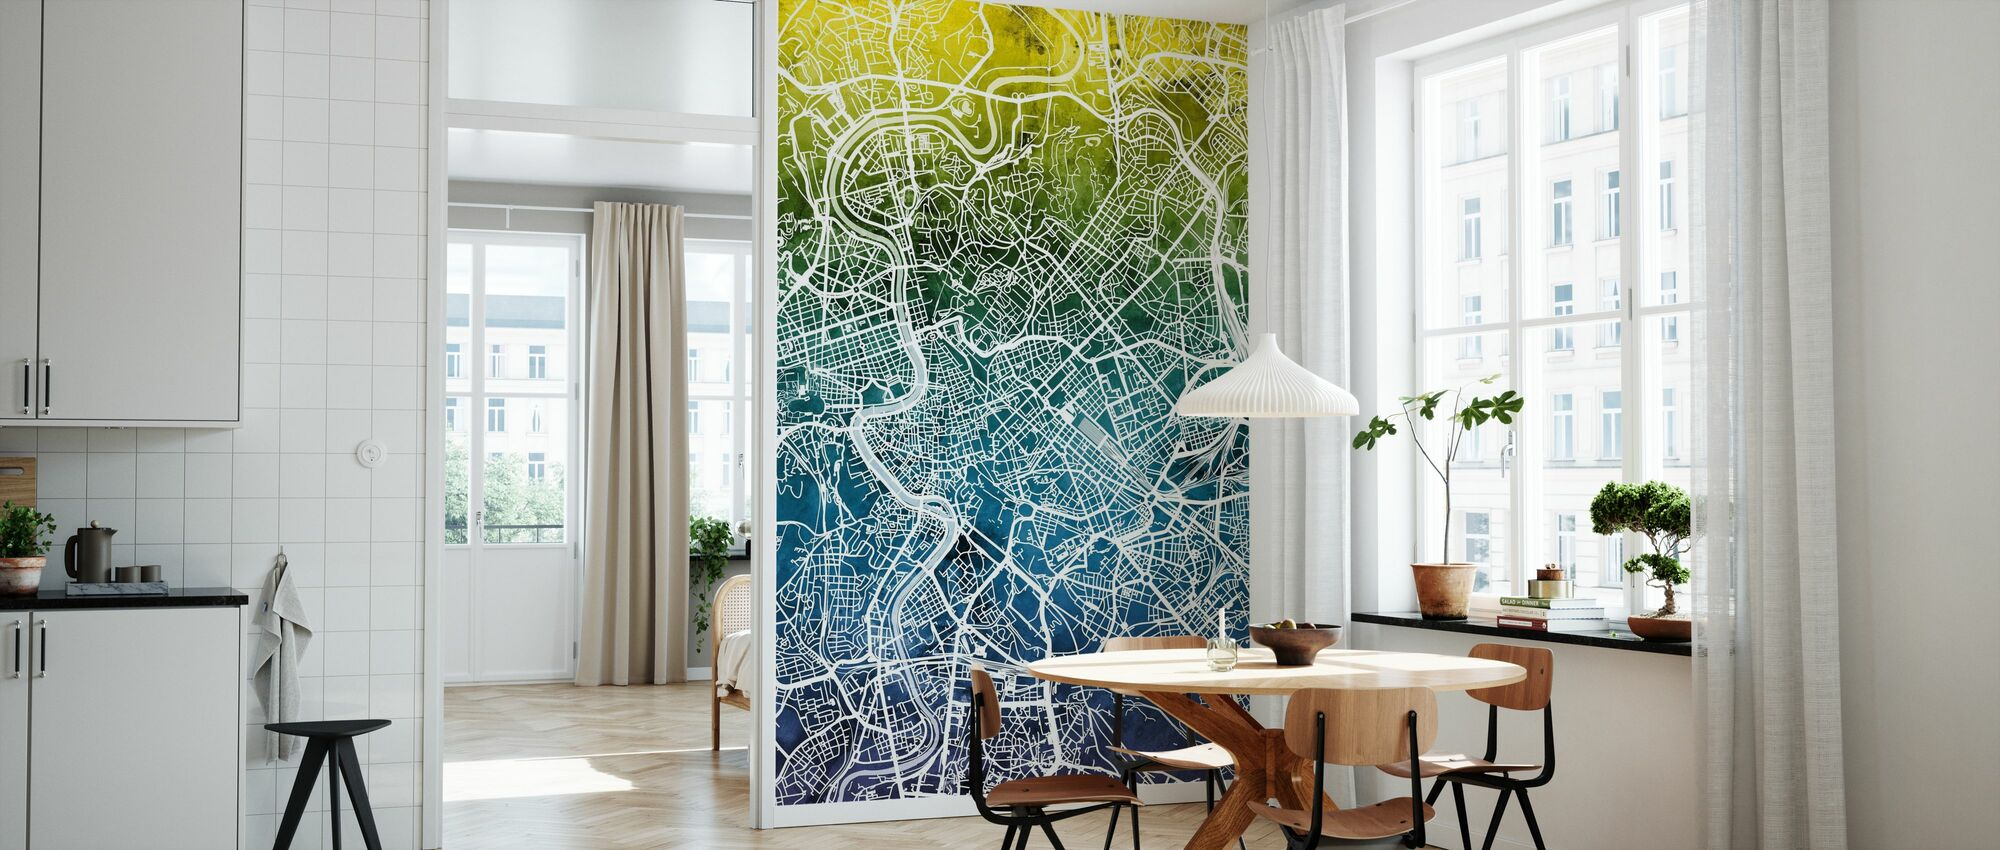 Rome Italy City Map - Wallpaper - Kitchen